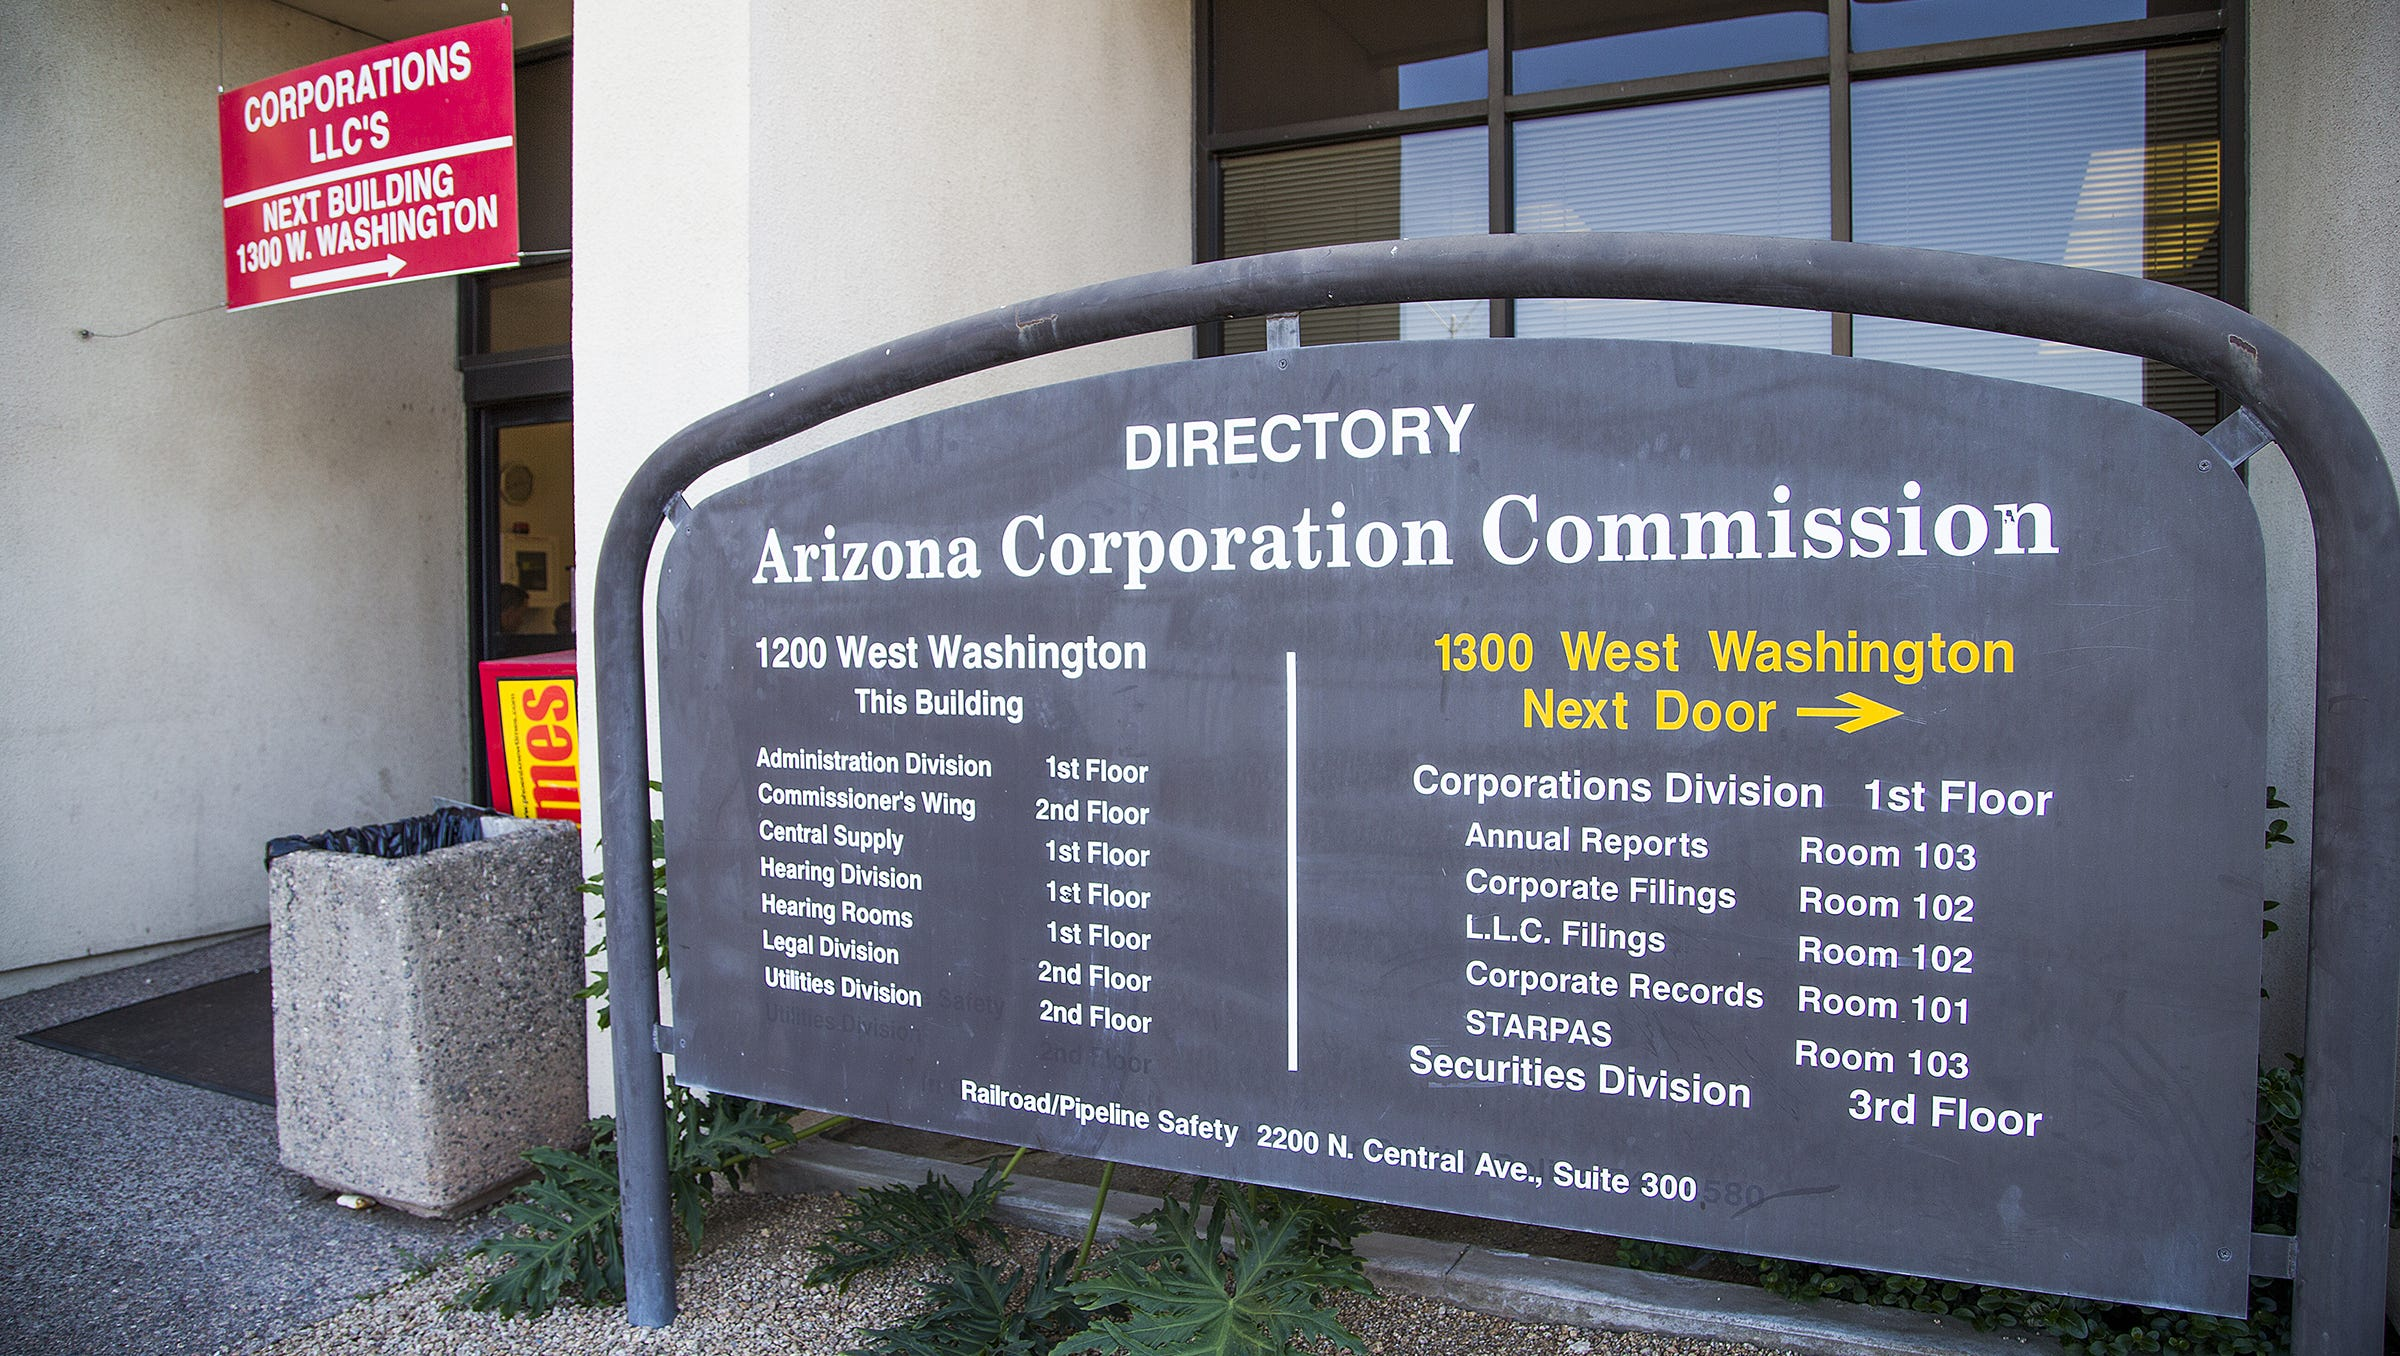 Arizona Corporation Commission Candidates 6 Up For Seats In 2020 Election